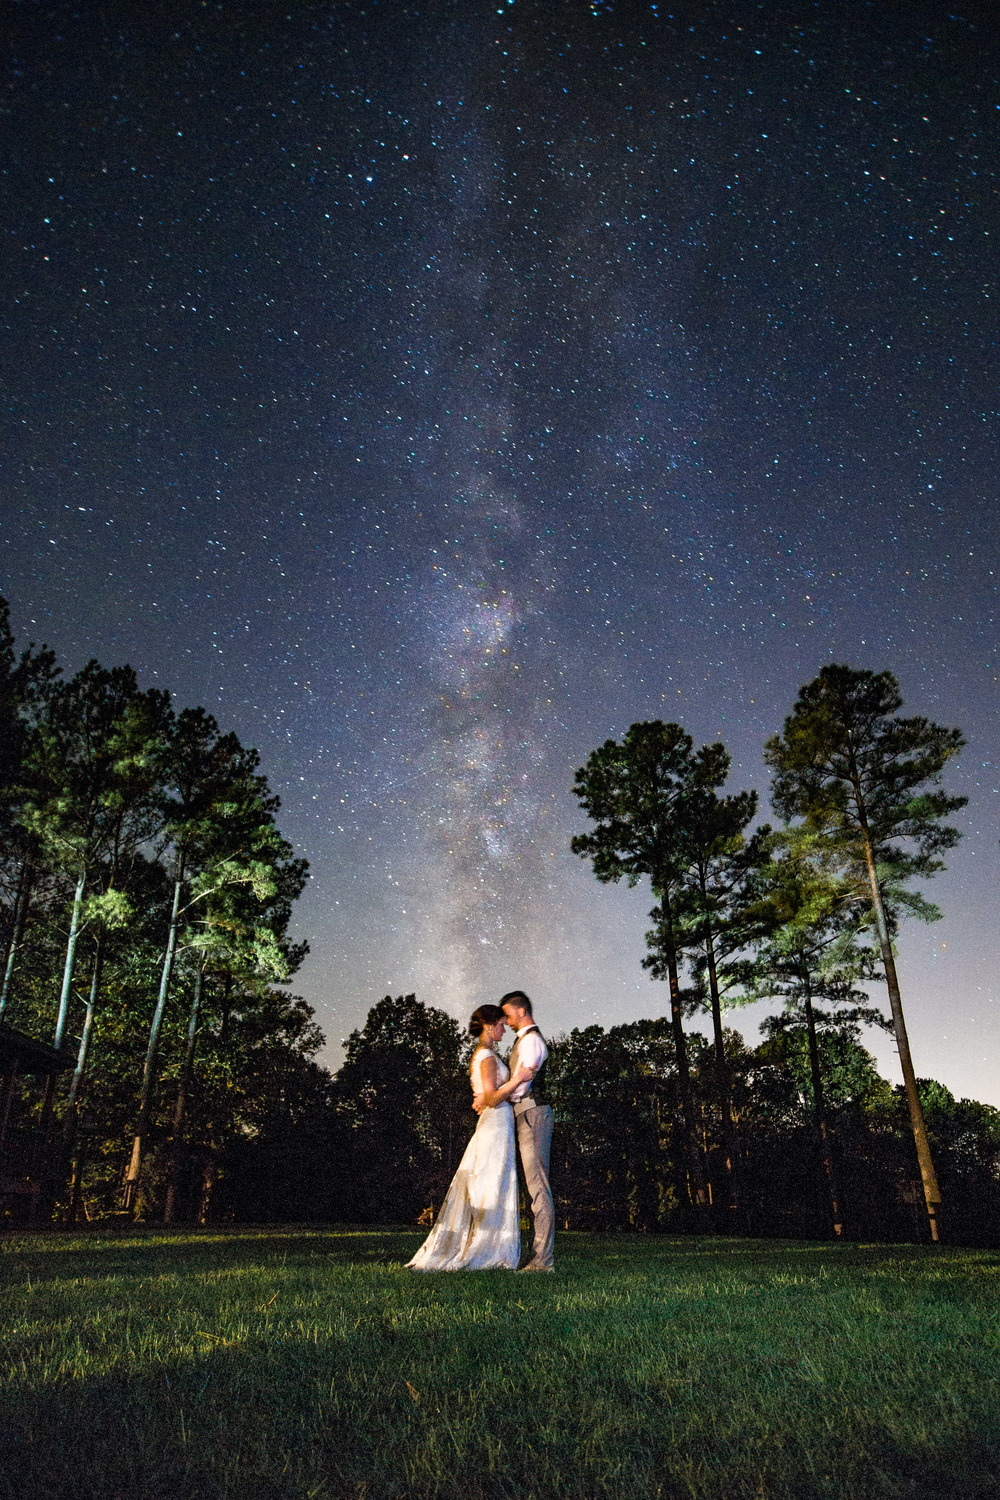 Here is another image I really love. Sure, the Milky Way is exploding forth in all of it's glory from their heads. But when I see this image I think of Dan and Mindy. And the story they shared with everybody about their struggles, about their faith and what motivates their love for each other. And honestly this one is not my favorite image from their day. This one is.